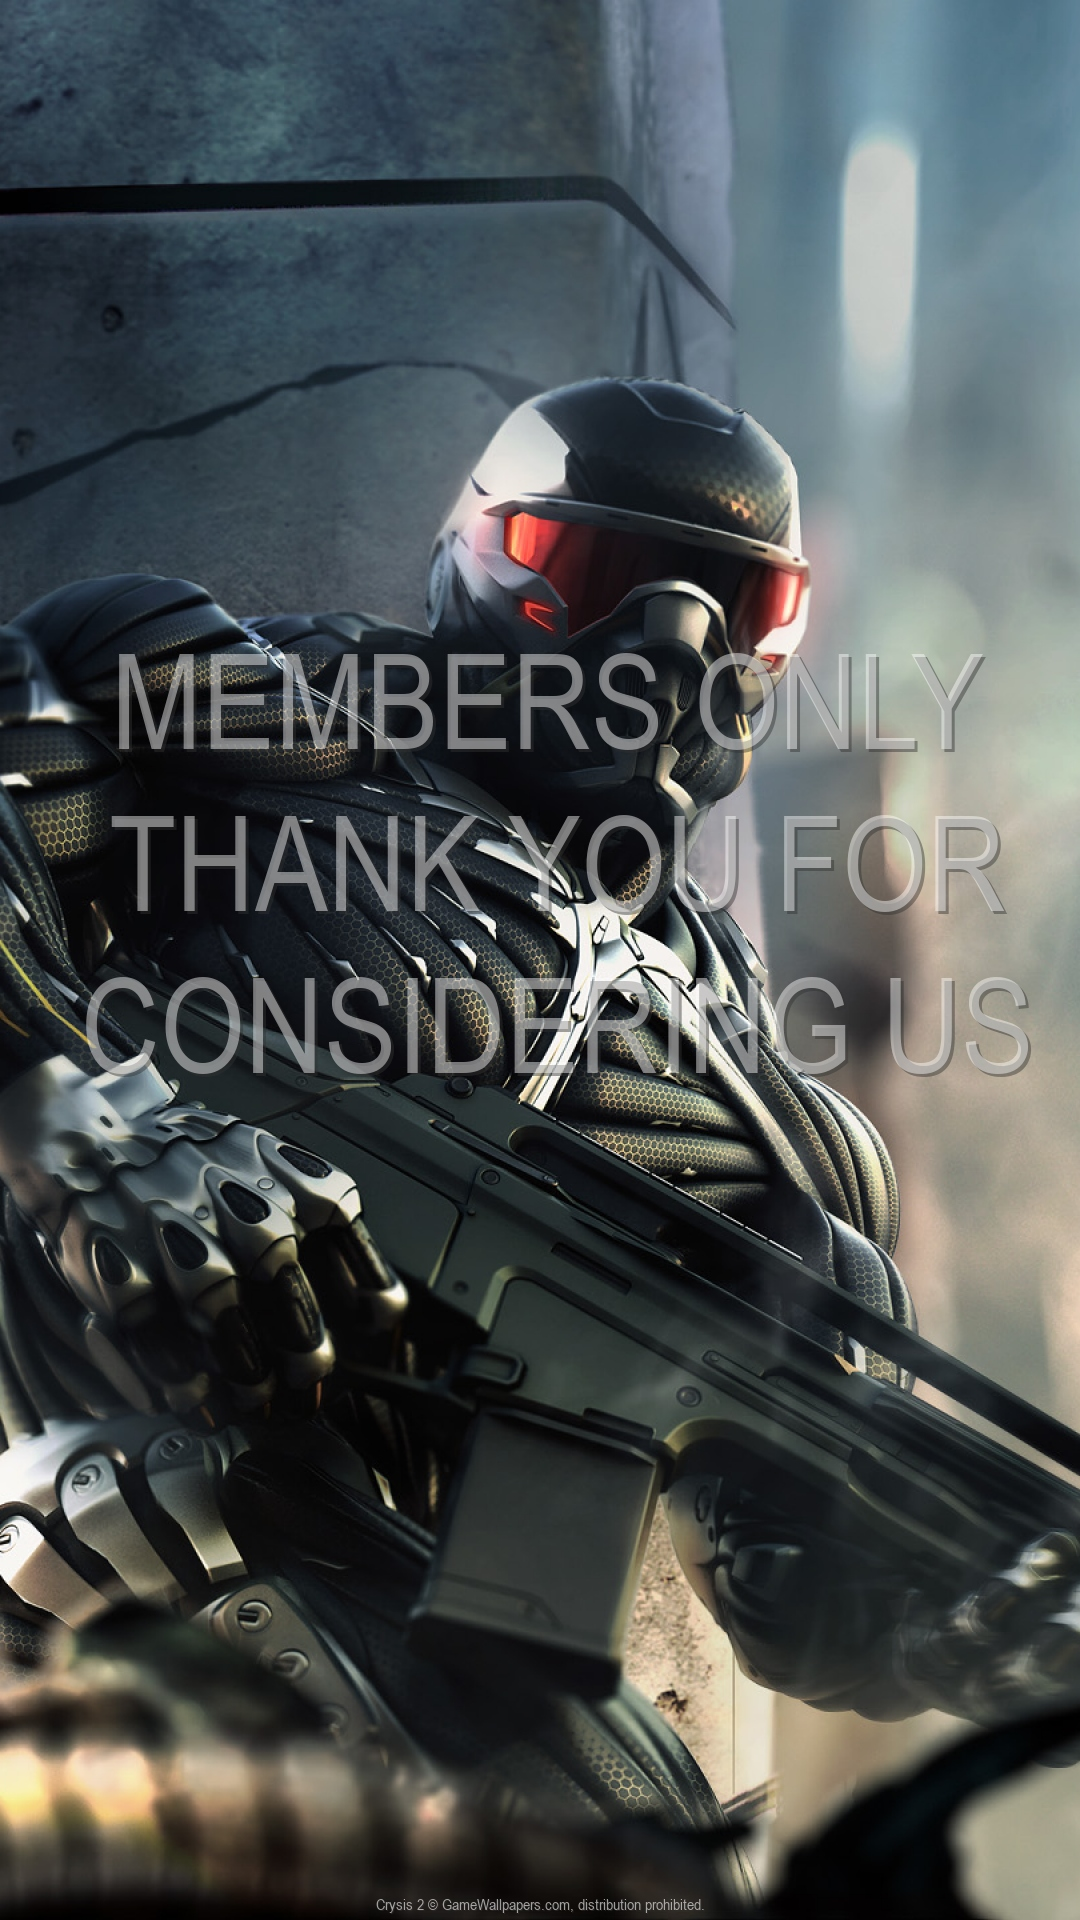 Crysis 2 1920x1080 Mobile wallpaper or background 01